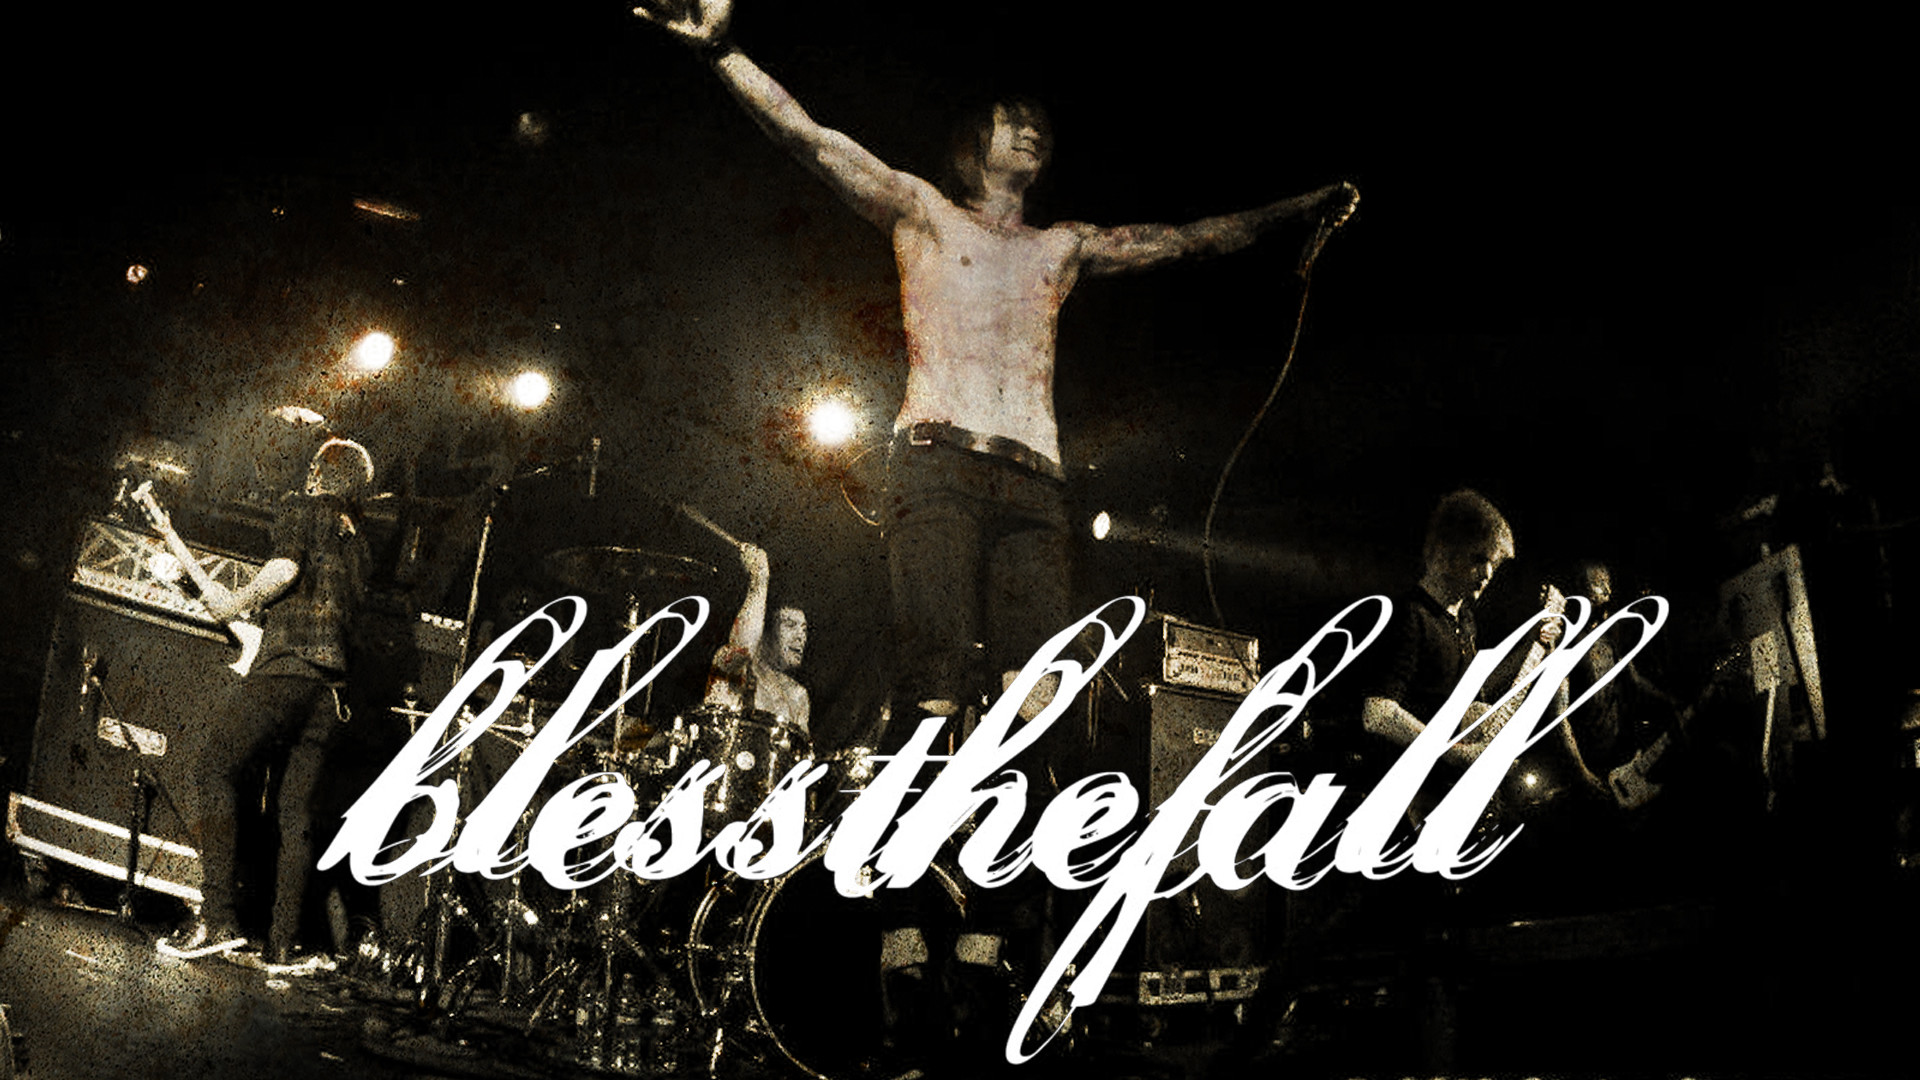 Blessthefall Background 1920x1080